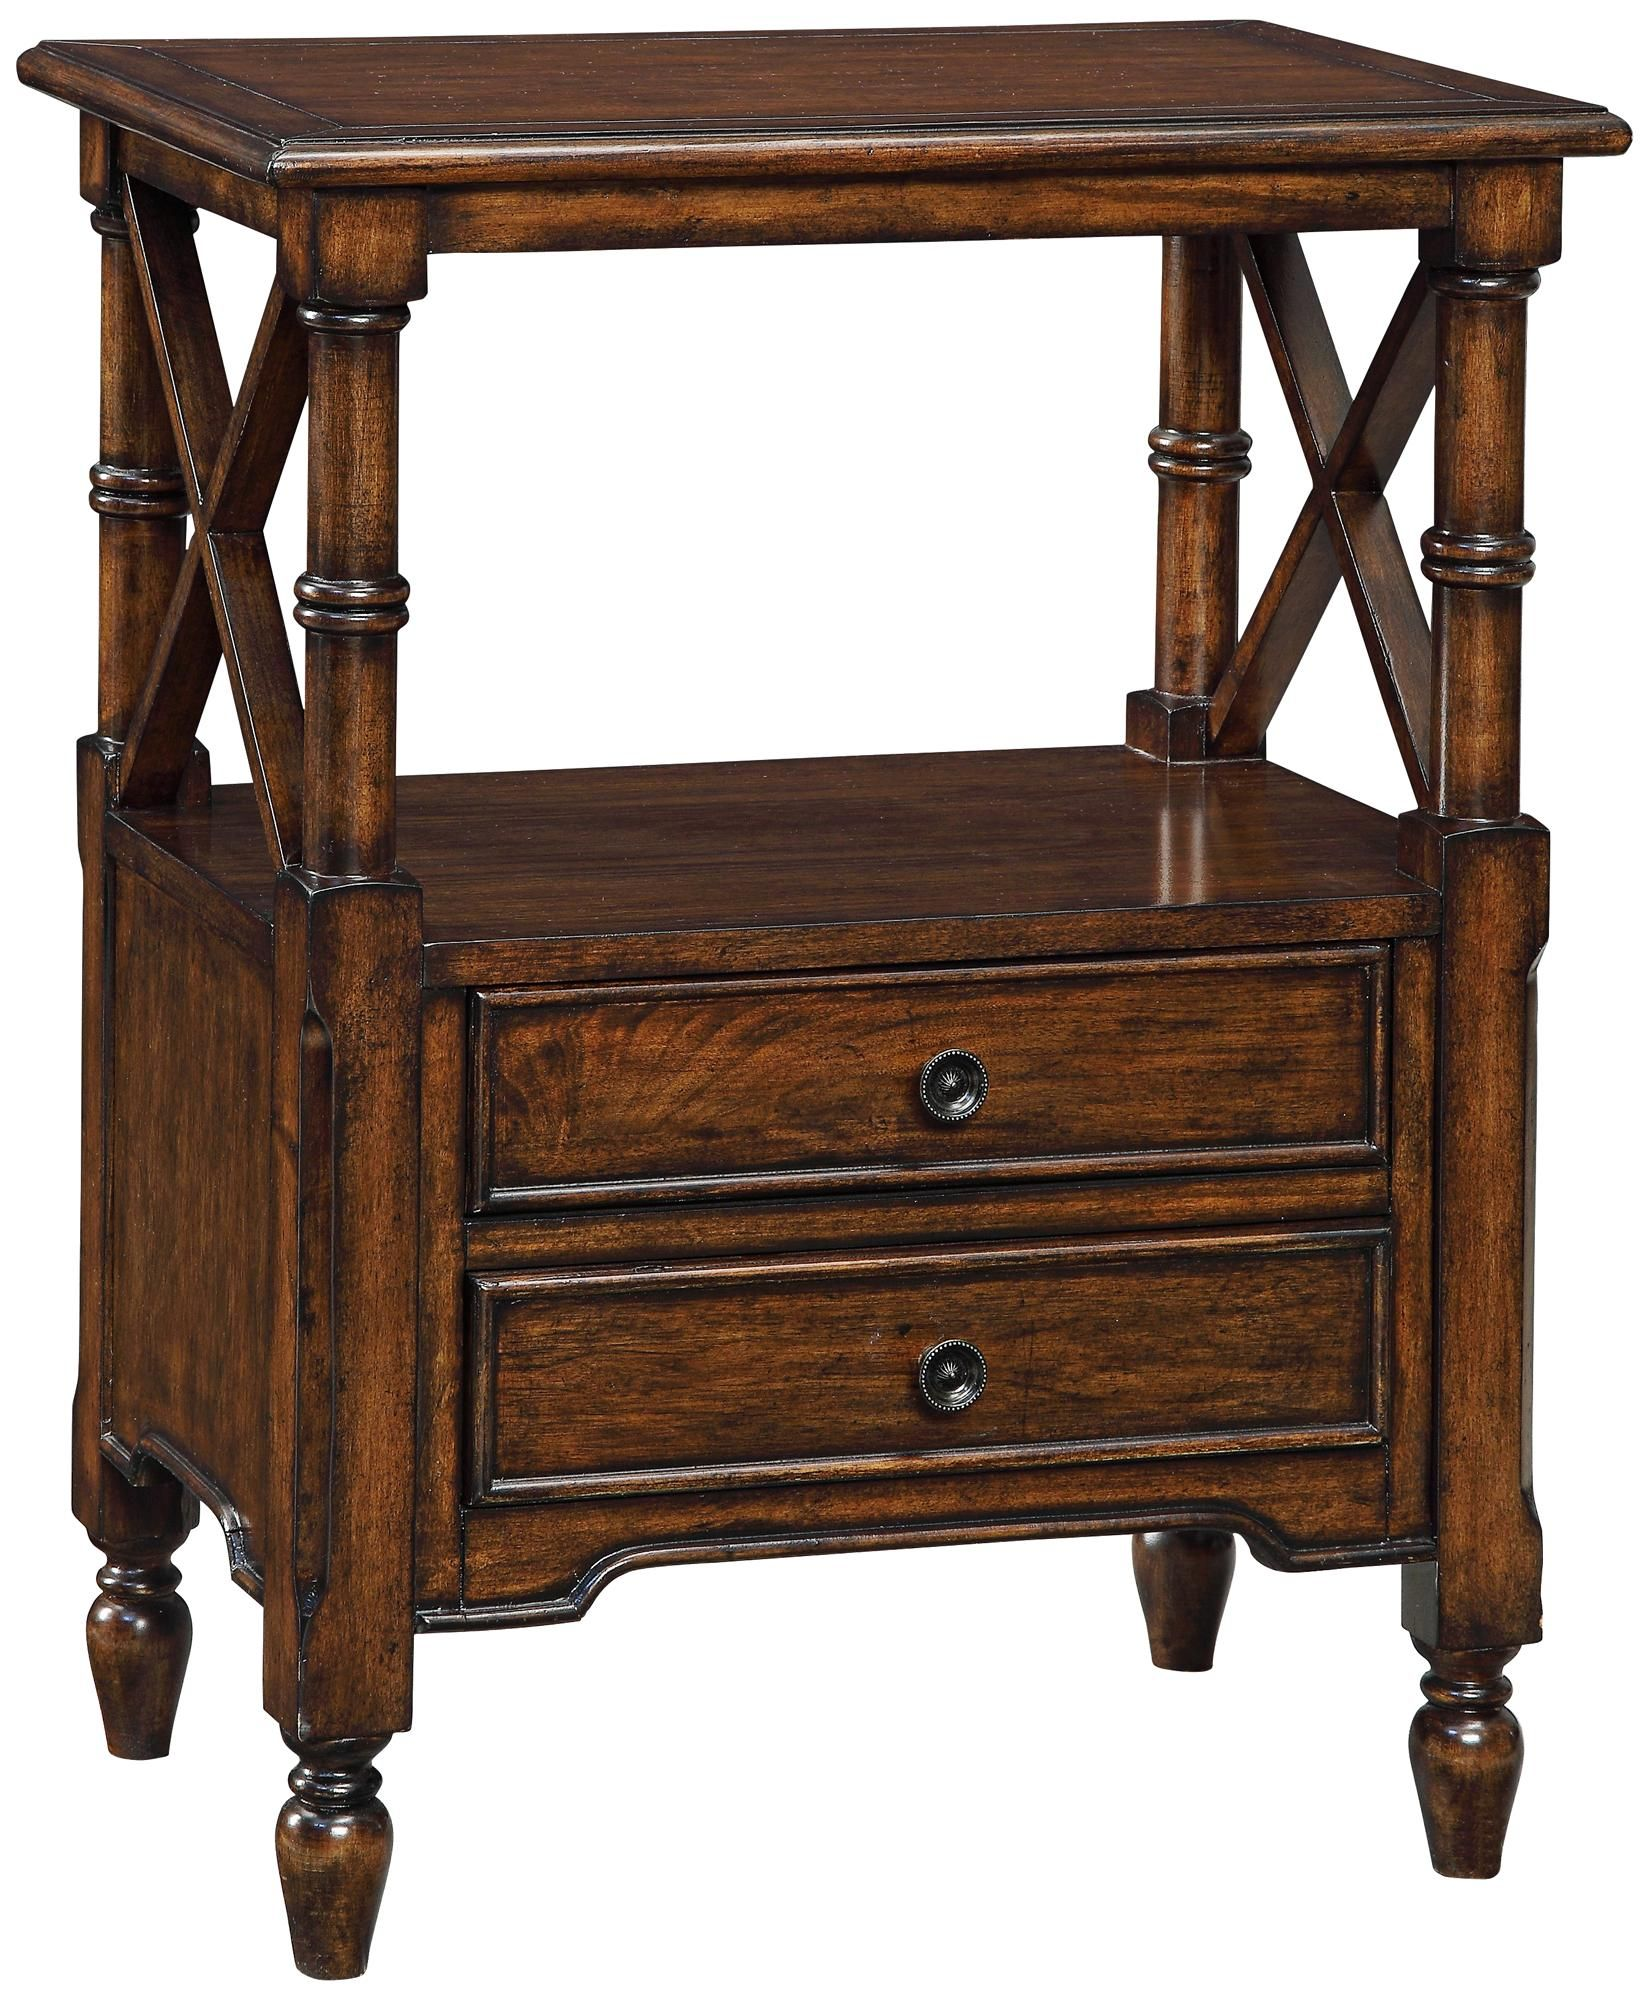 tamryn brown cherry drawer accent table furniture with drawers parsons desk bath and beyond salt lamp half round wall farmhouse dining plans small moon hall tama drum stool end